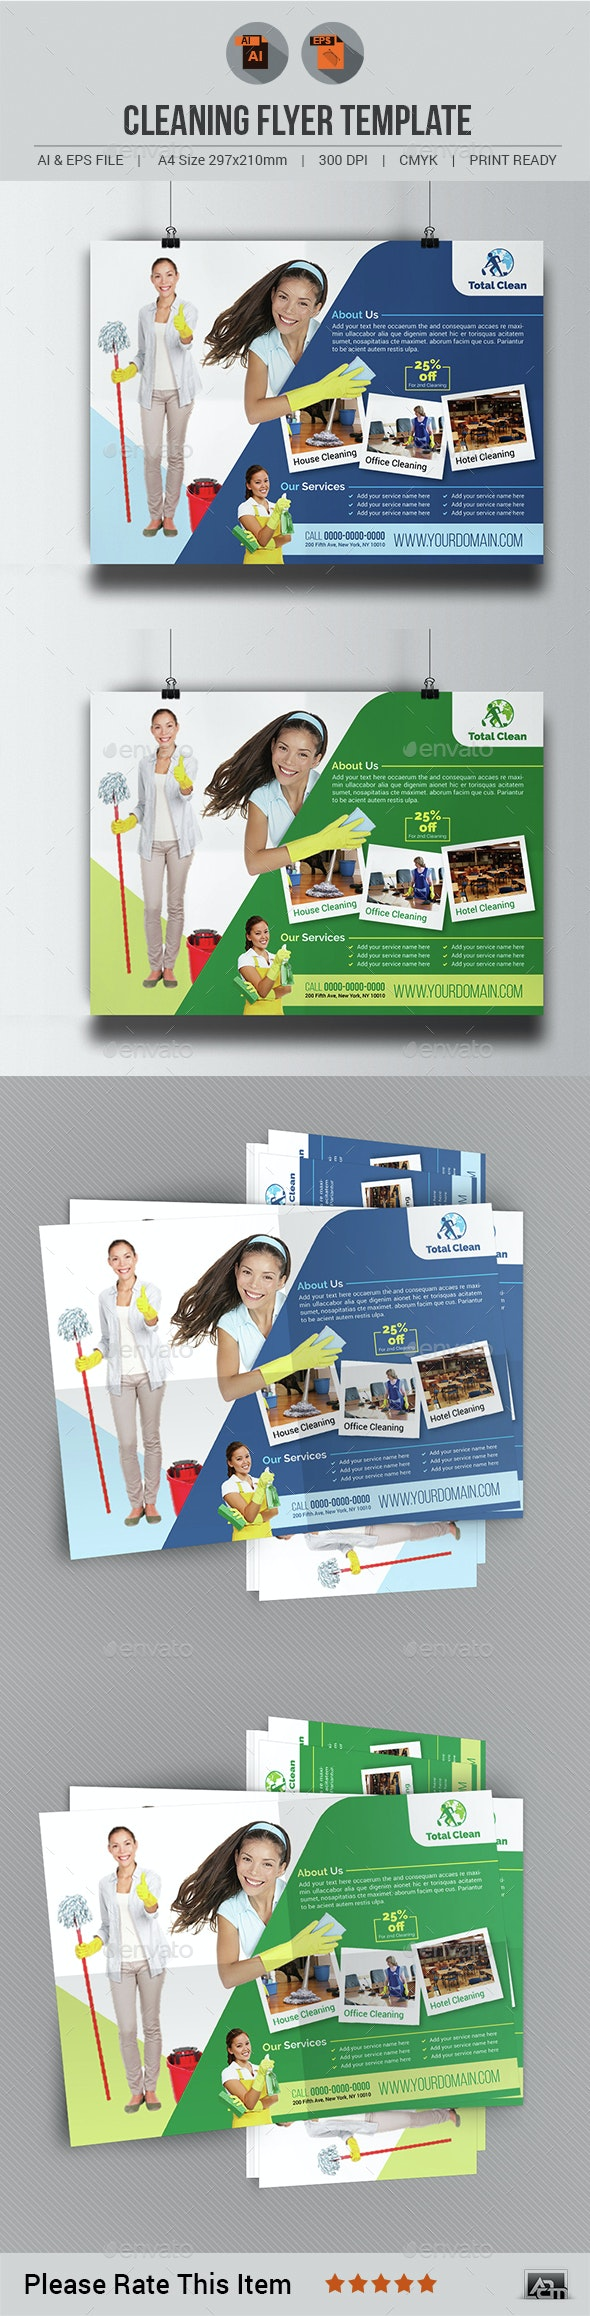 Cleaning Flyer Template V3 - Commerce Flyers